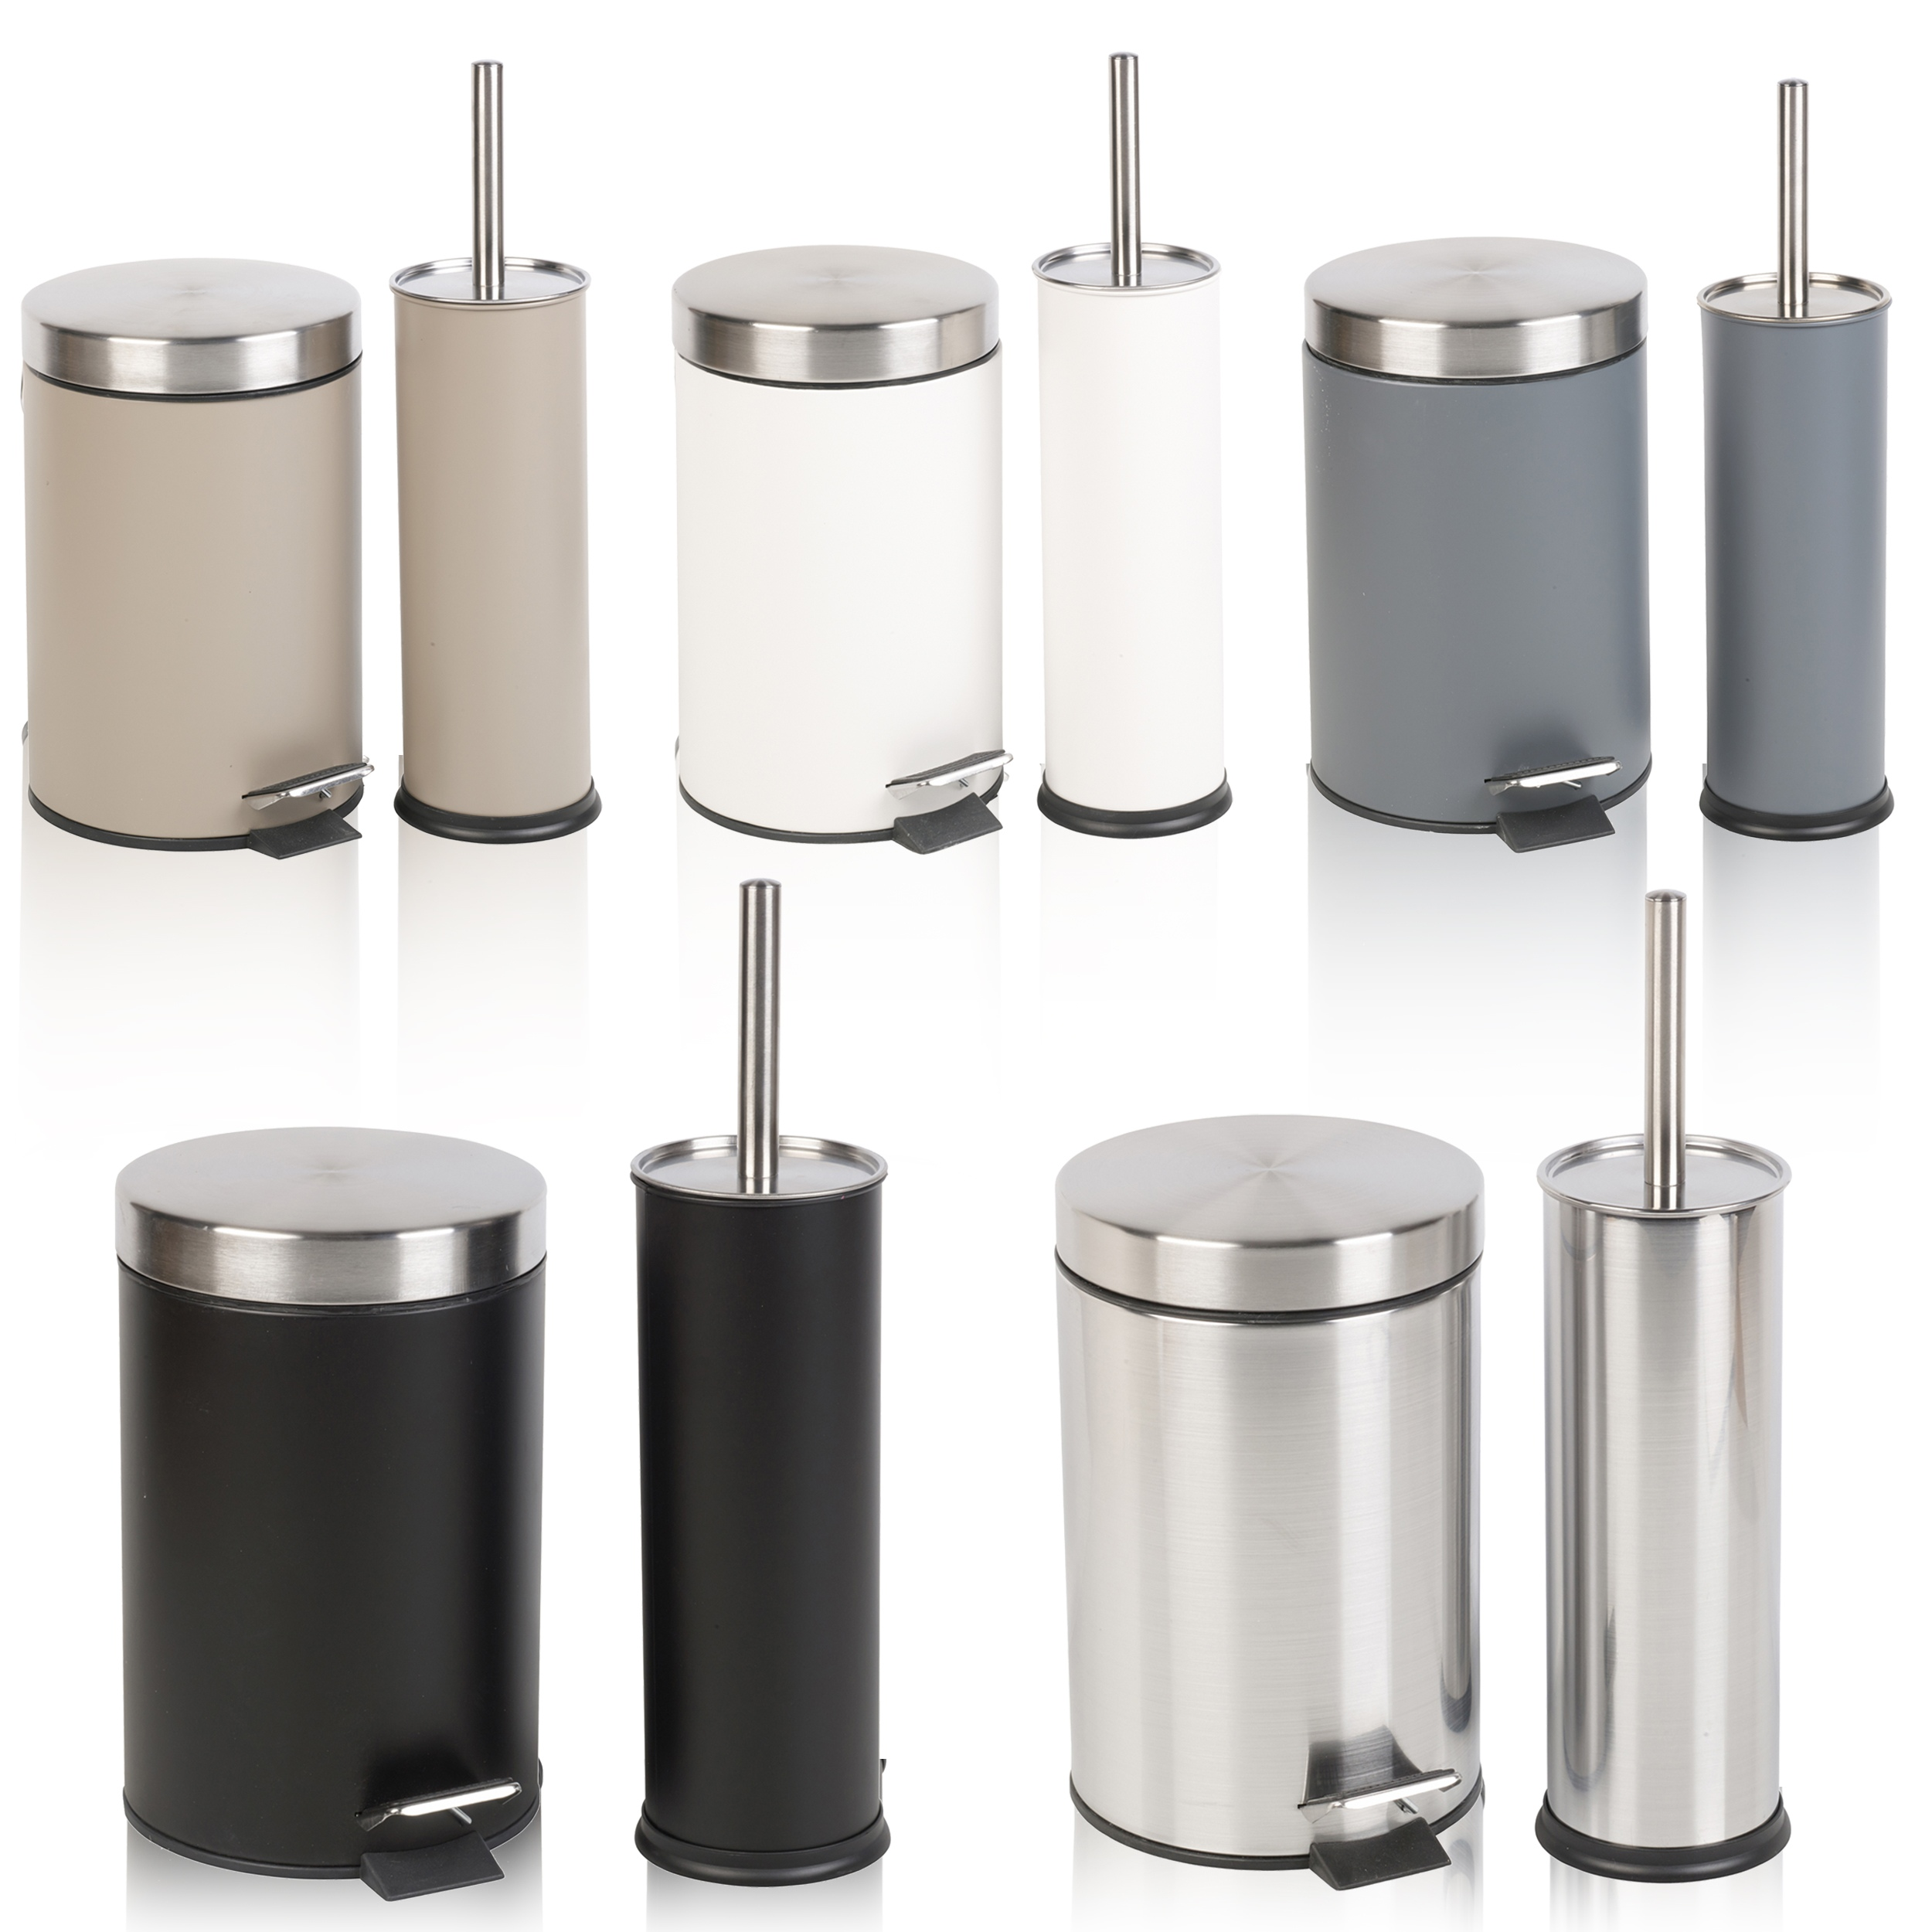 Stainless Steel Bathroom Pedal Bin & Toilet Brush Colour